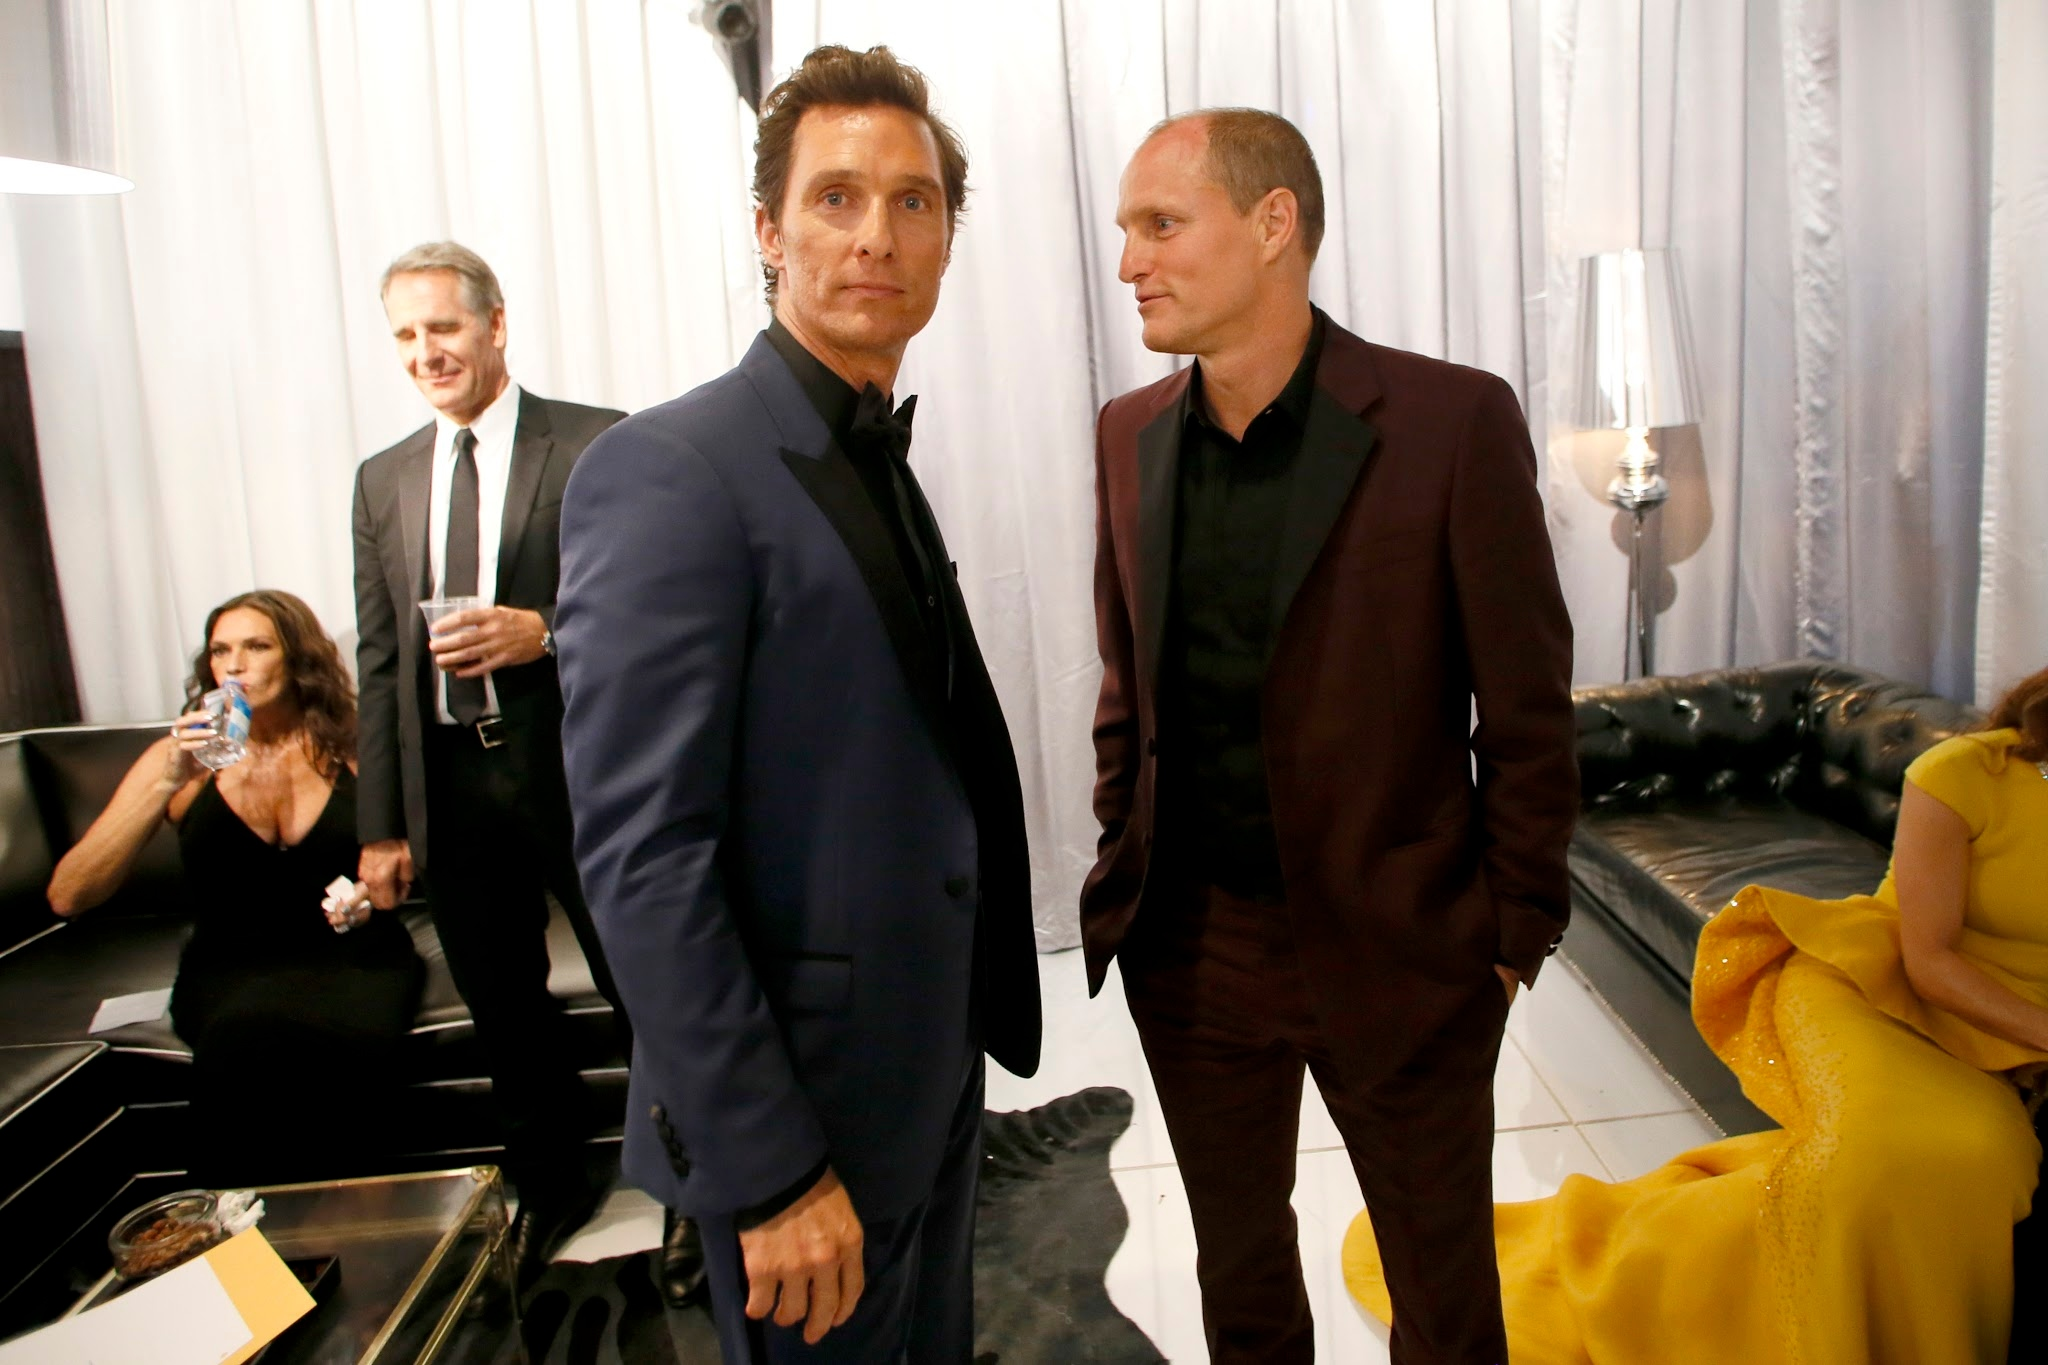 Woody Harrelson And Matthew McConaughey At The 66th Primetime Emmy Awards Aug 25